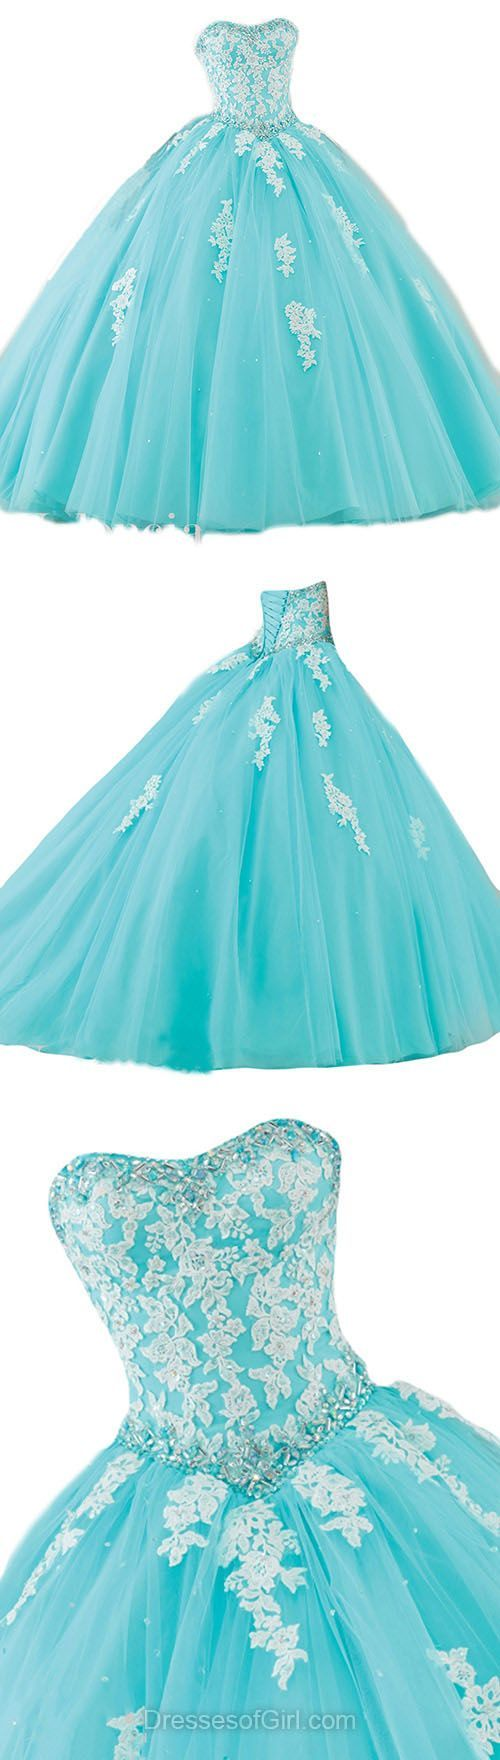 Ball Gown Prom Dresses, Strapless Prom Dress, Tulle Evening Dresses, Blue Party Dresses, Cheap Quinceanera Dresses